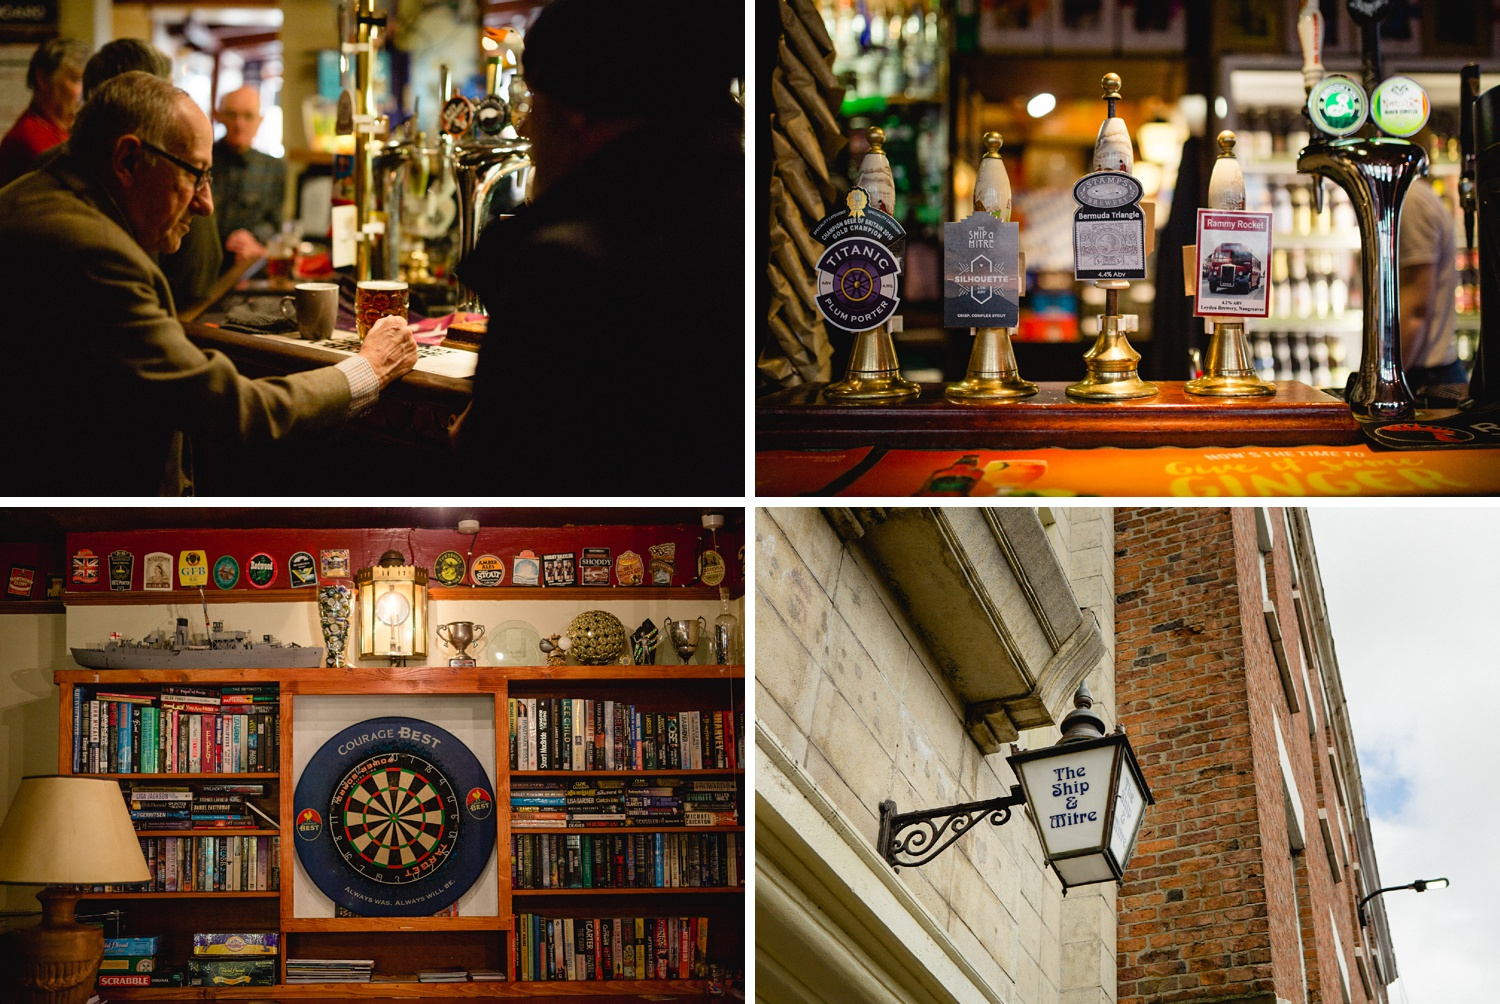 editorial photography details in Ship and Mitre pub